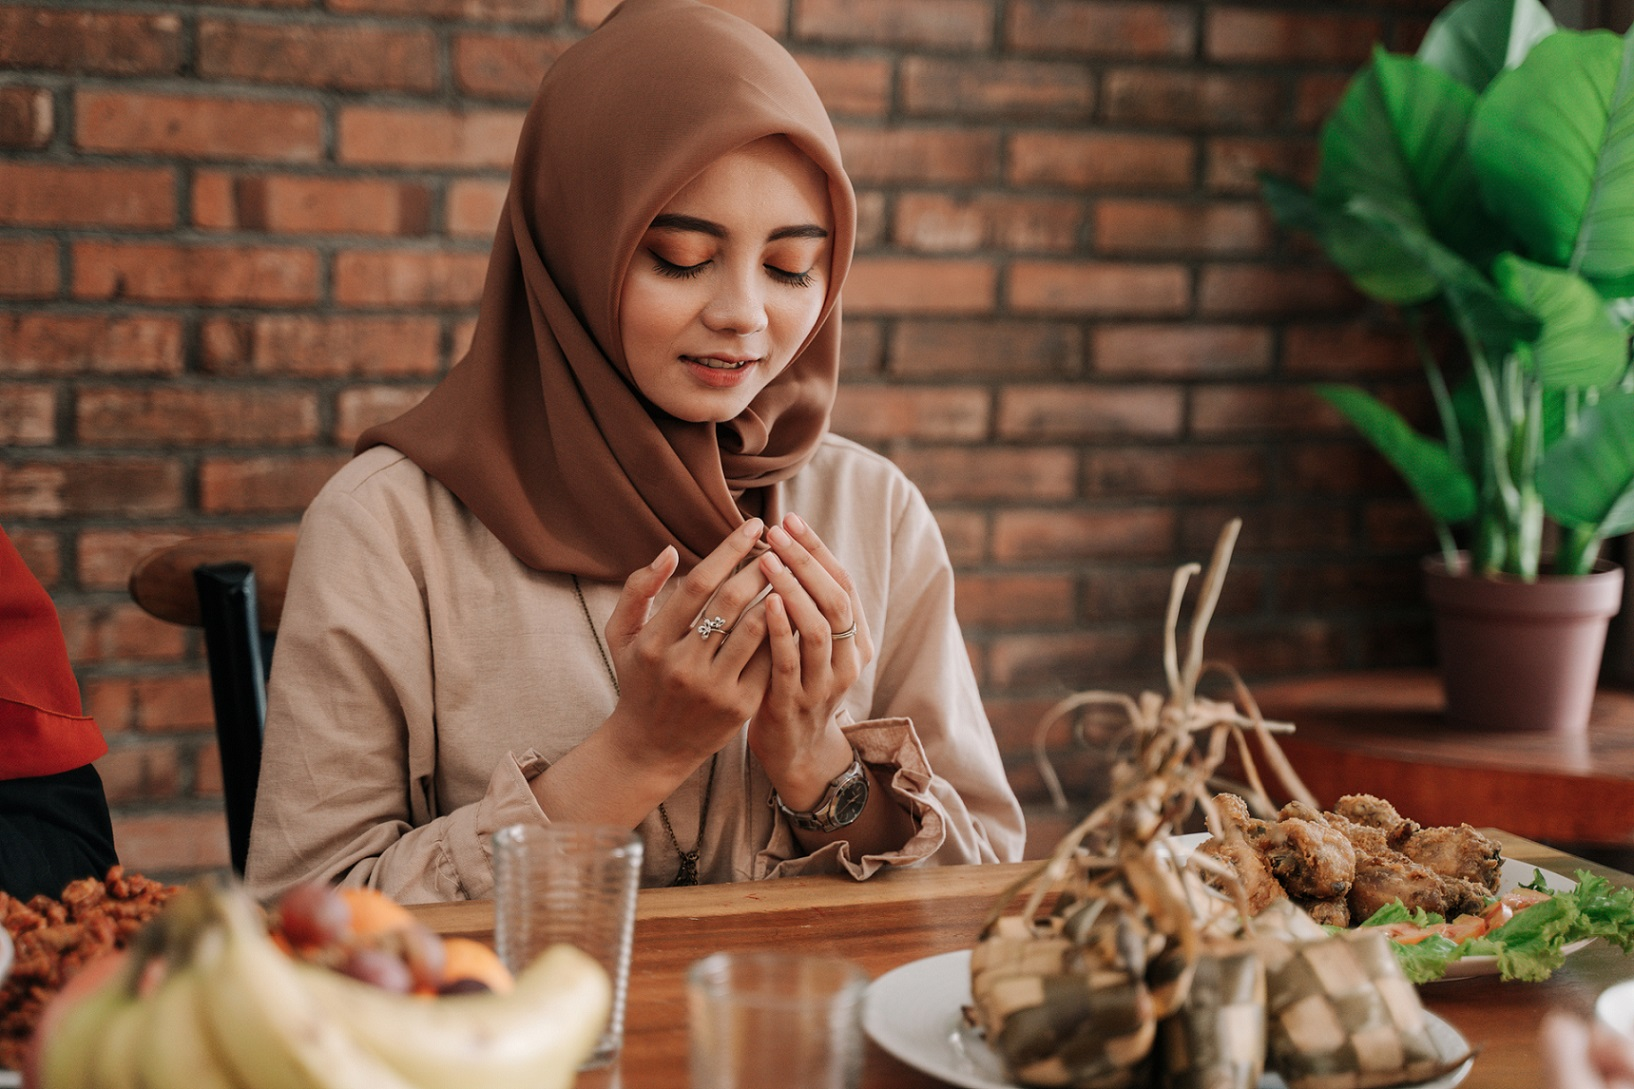 Expert Advice for a Healthy Ramadan 2021 During COVID-19